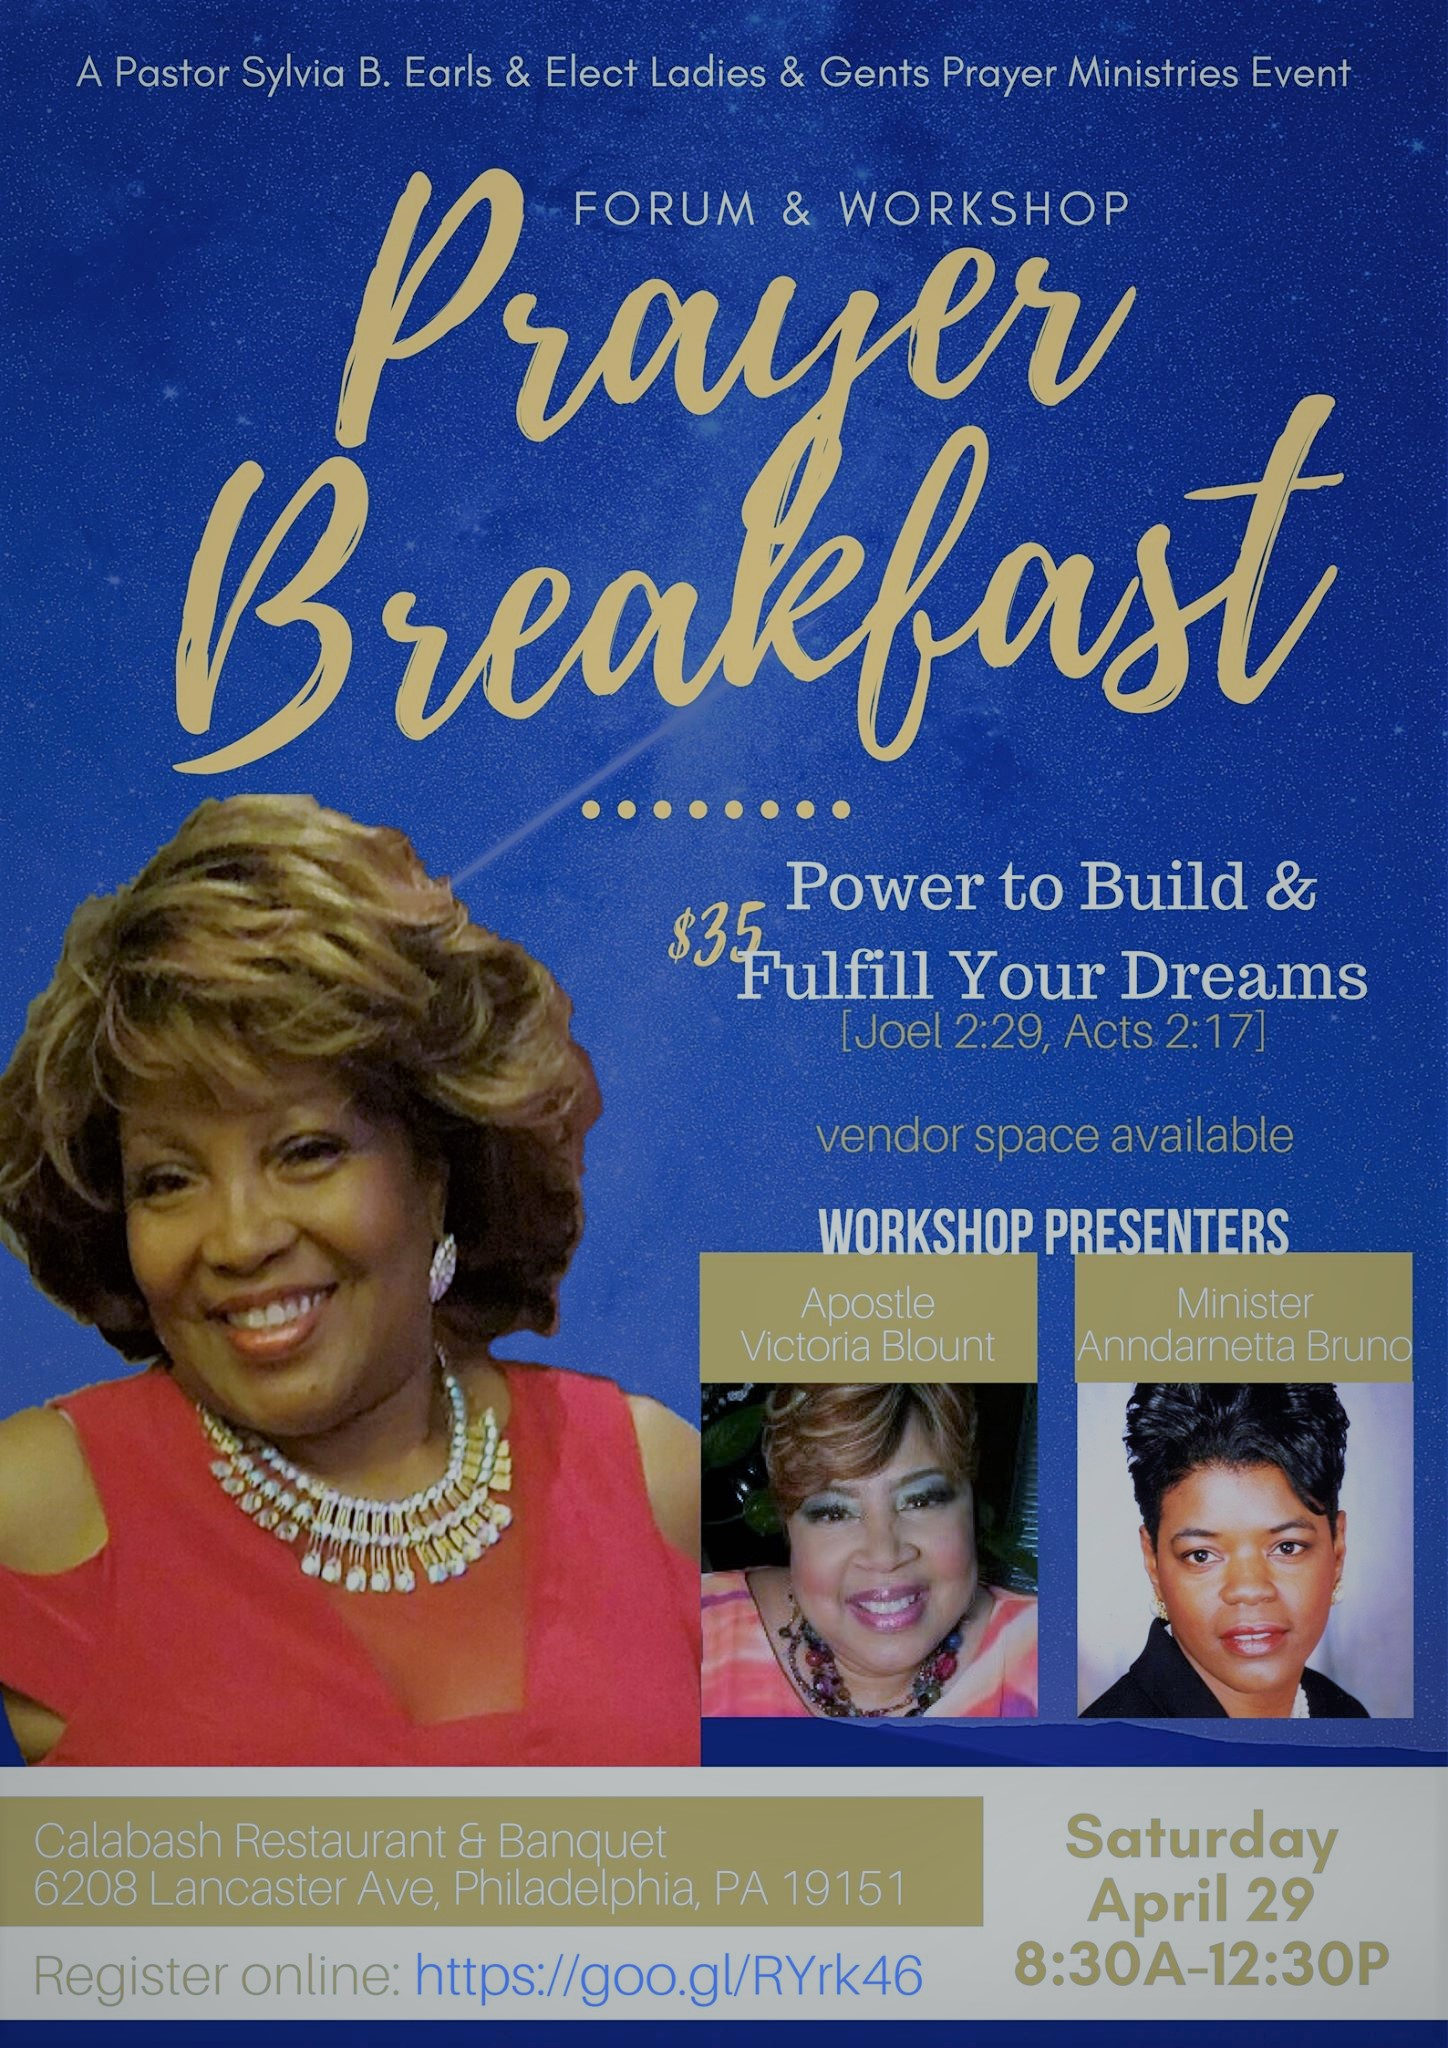 Elect Ladies & Gents PRAYER BREAKFAST FLYER for April 29th